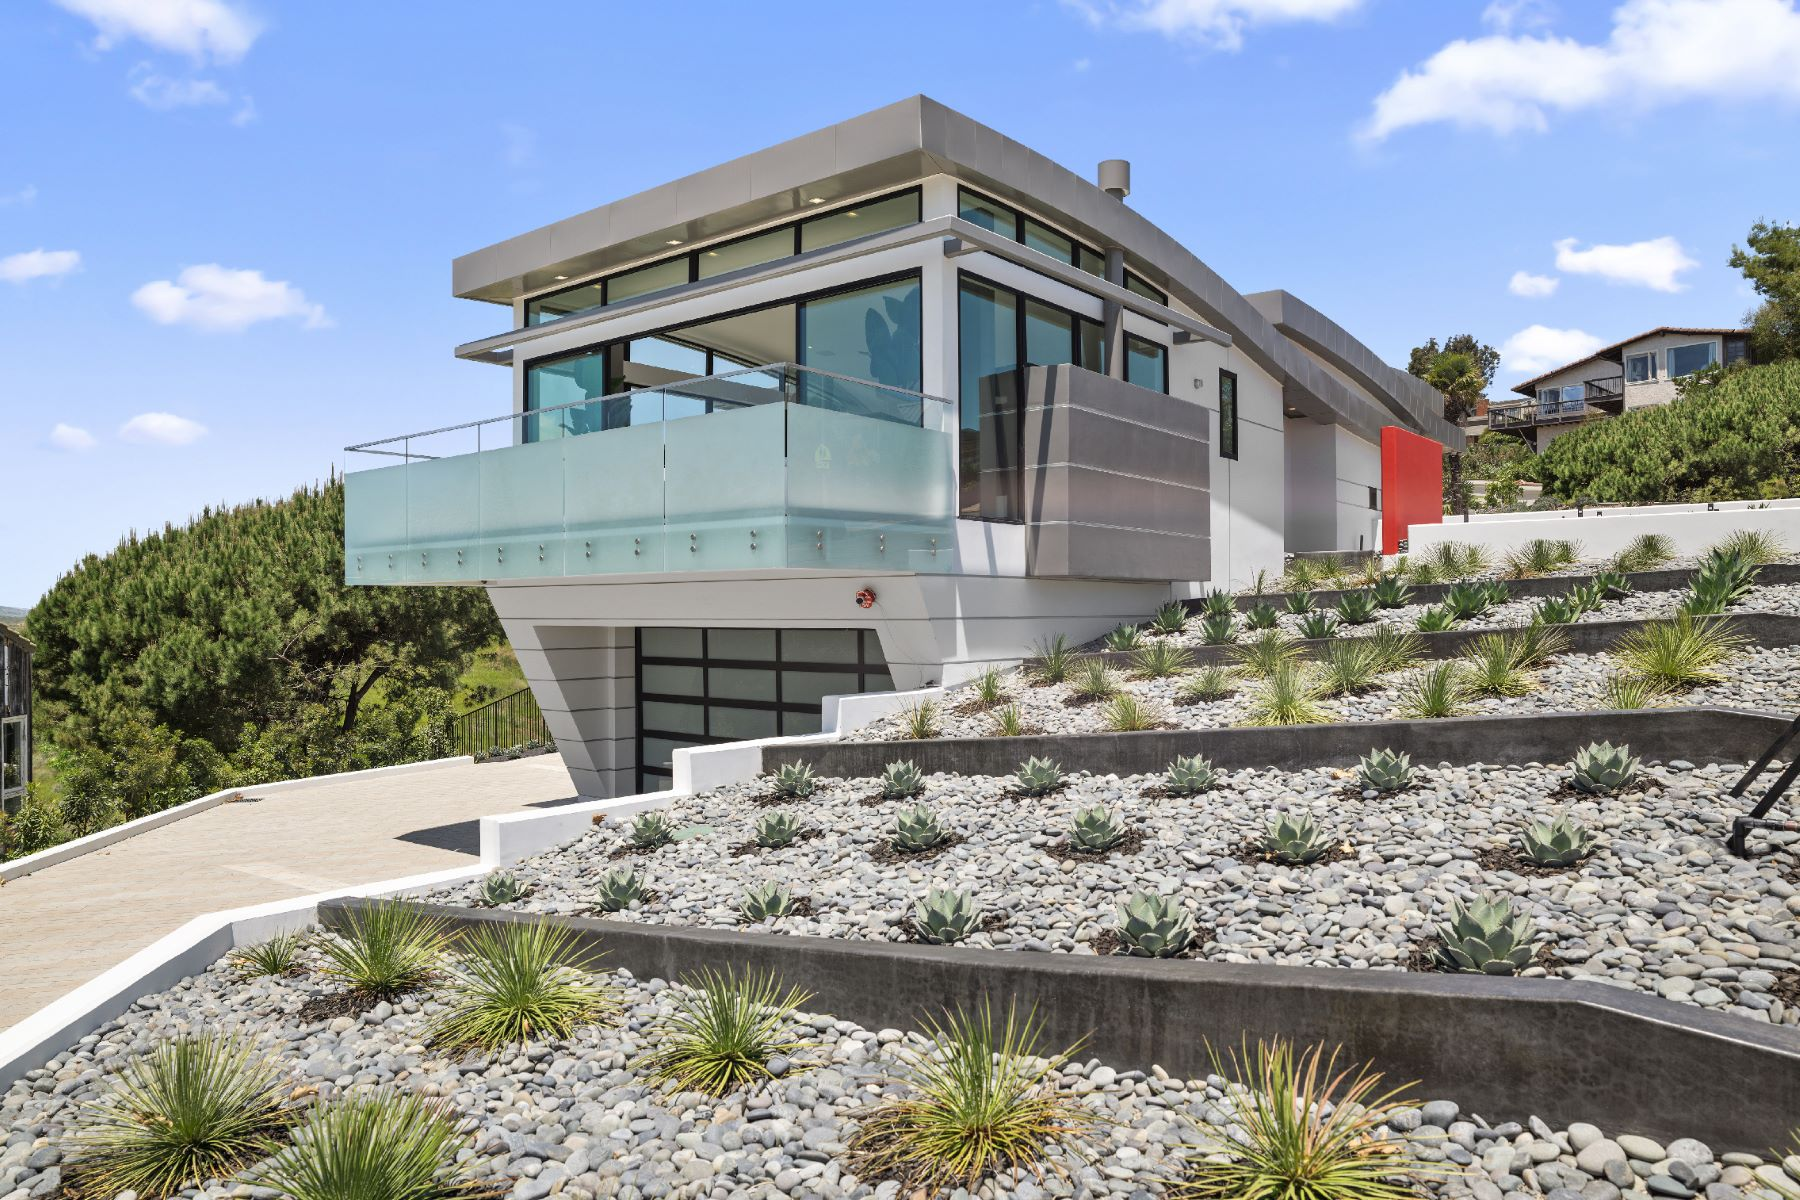 Single Family Homes for Sale at 2570 Park Ave Ave Laguna Beach, California 92651 United States